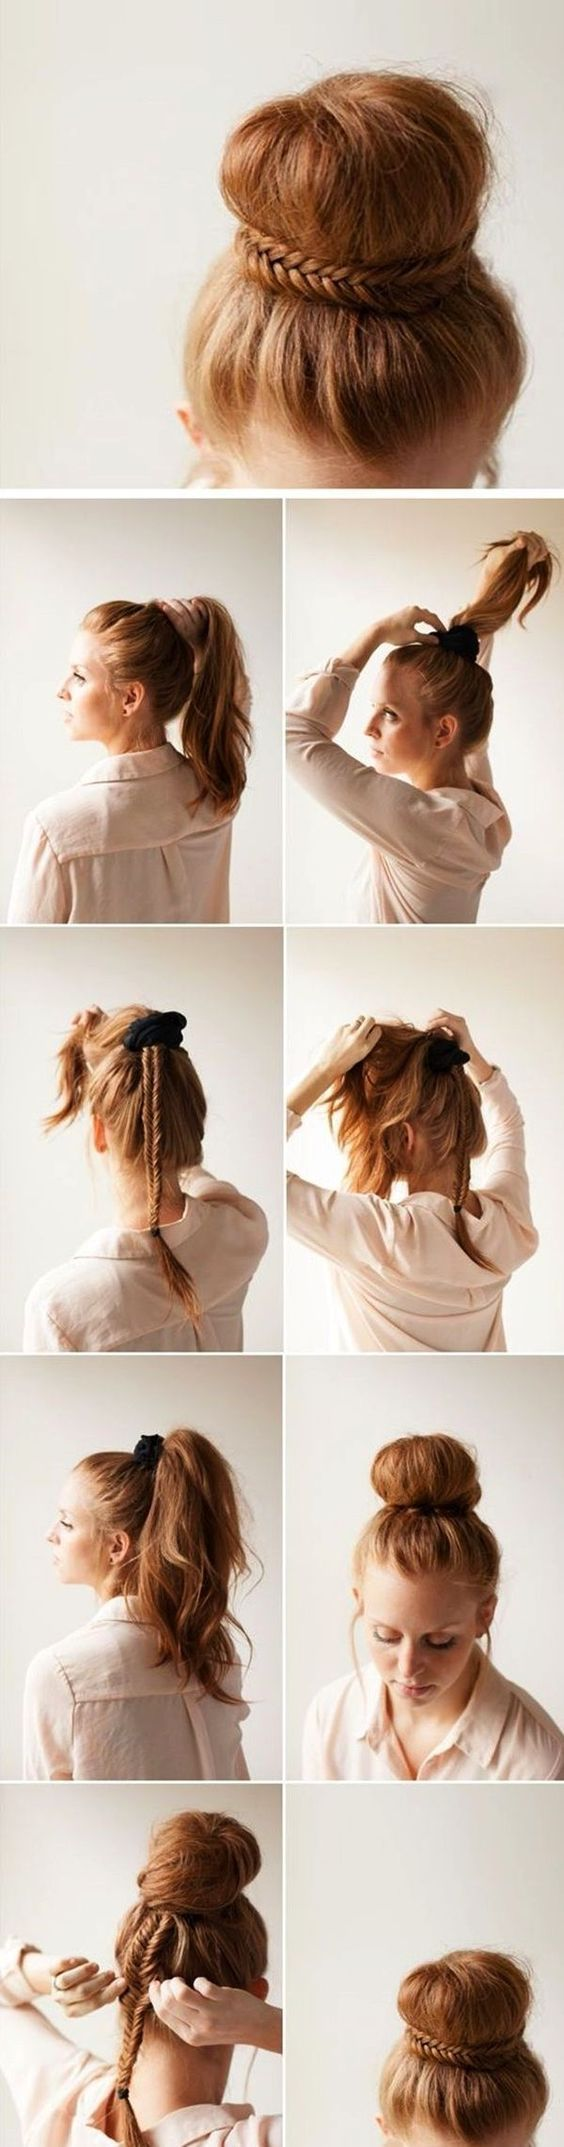 Luckily, there are tons of hairstyle tutorials we can incorporate into our daily beauty routine and spice it up for a special occasion. -- Want to know more, click on the image. #Haircare #hairlossadvice